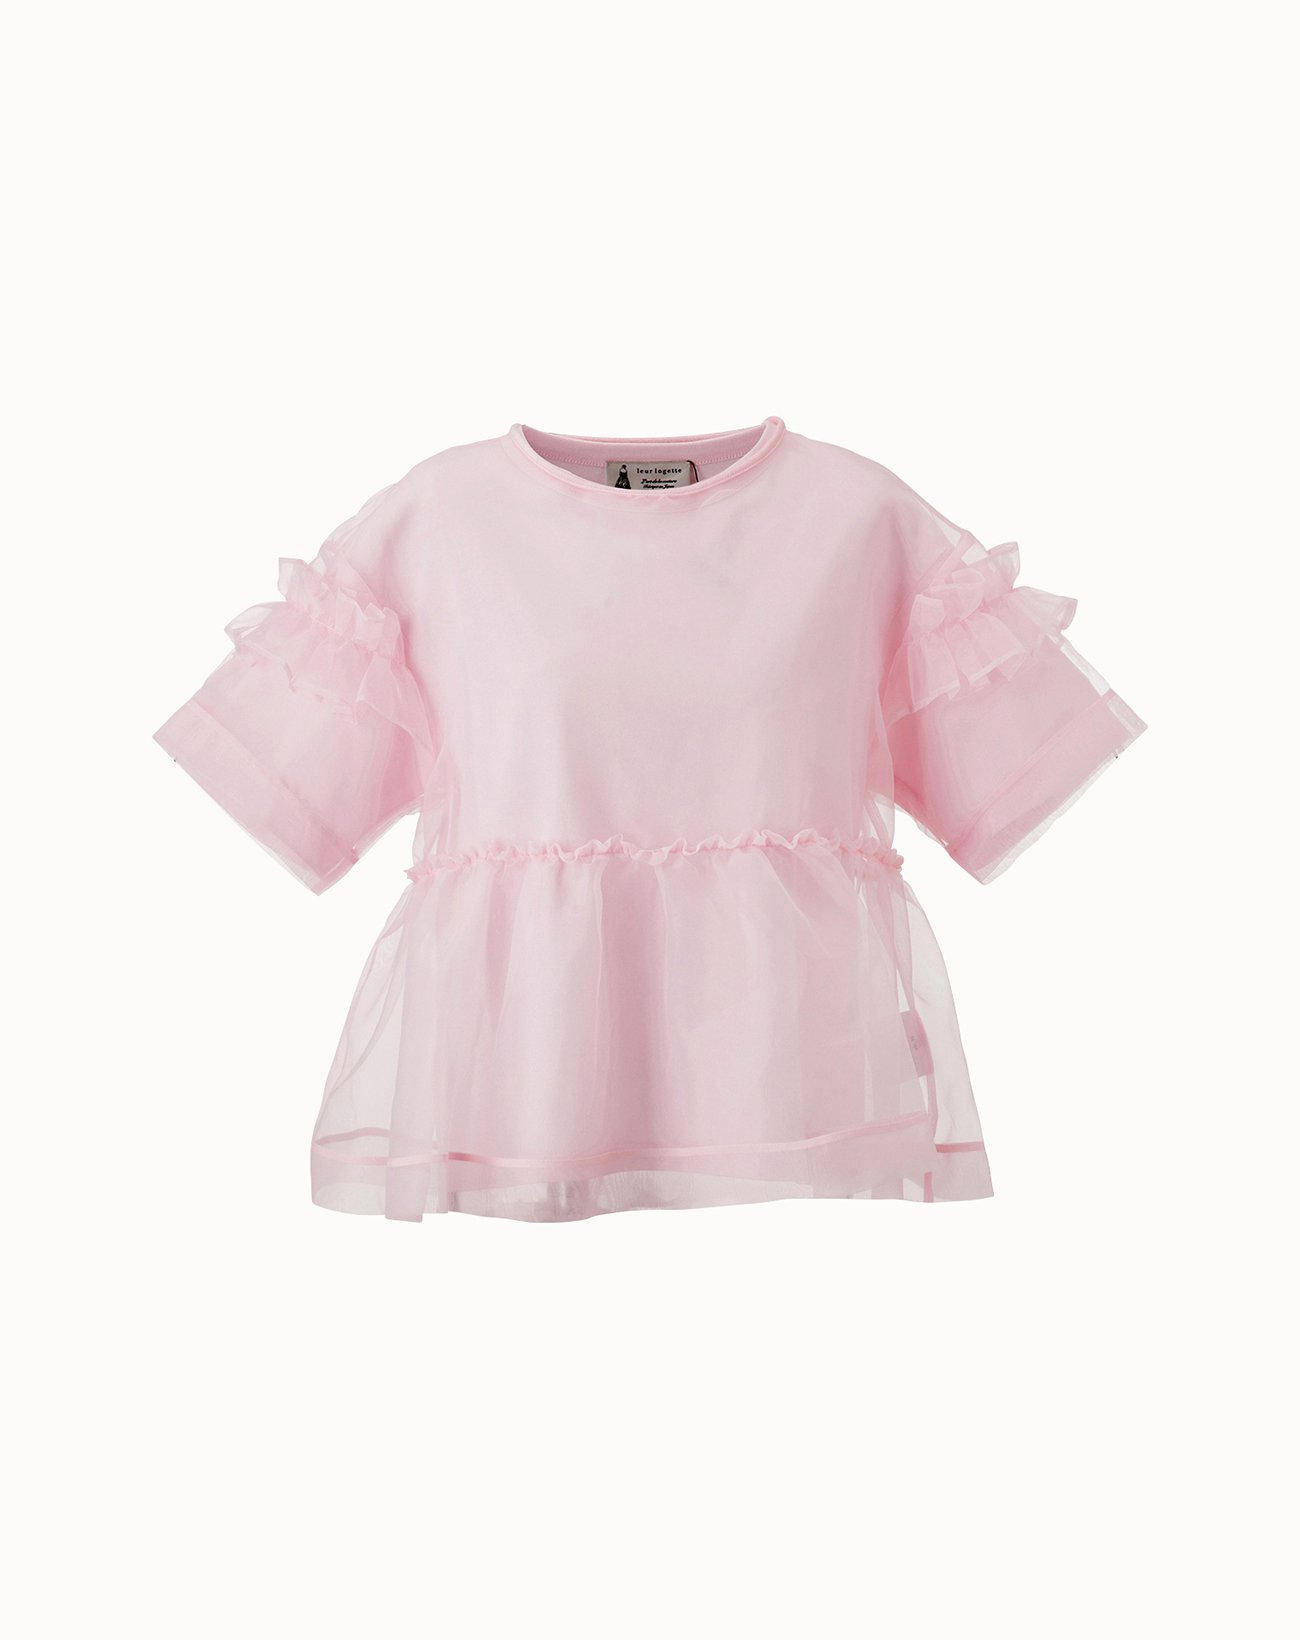 Organdy Layered Top - Pink